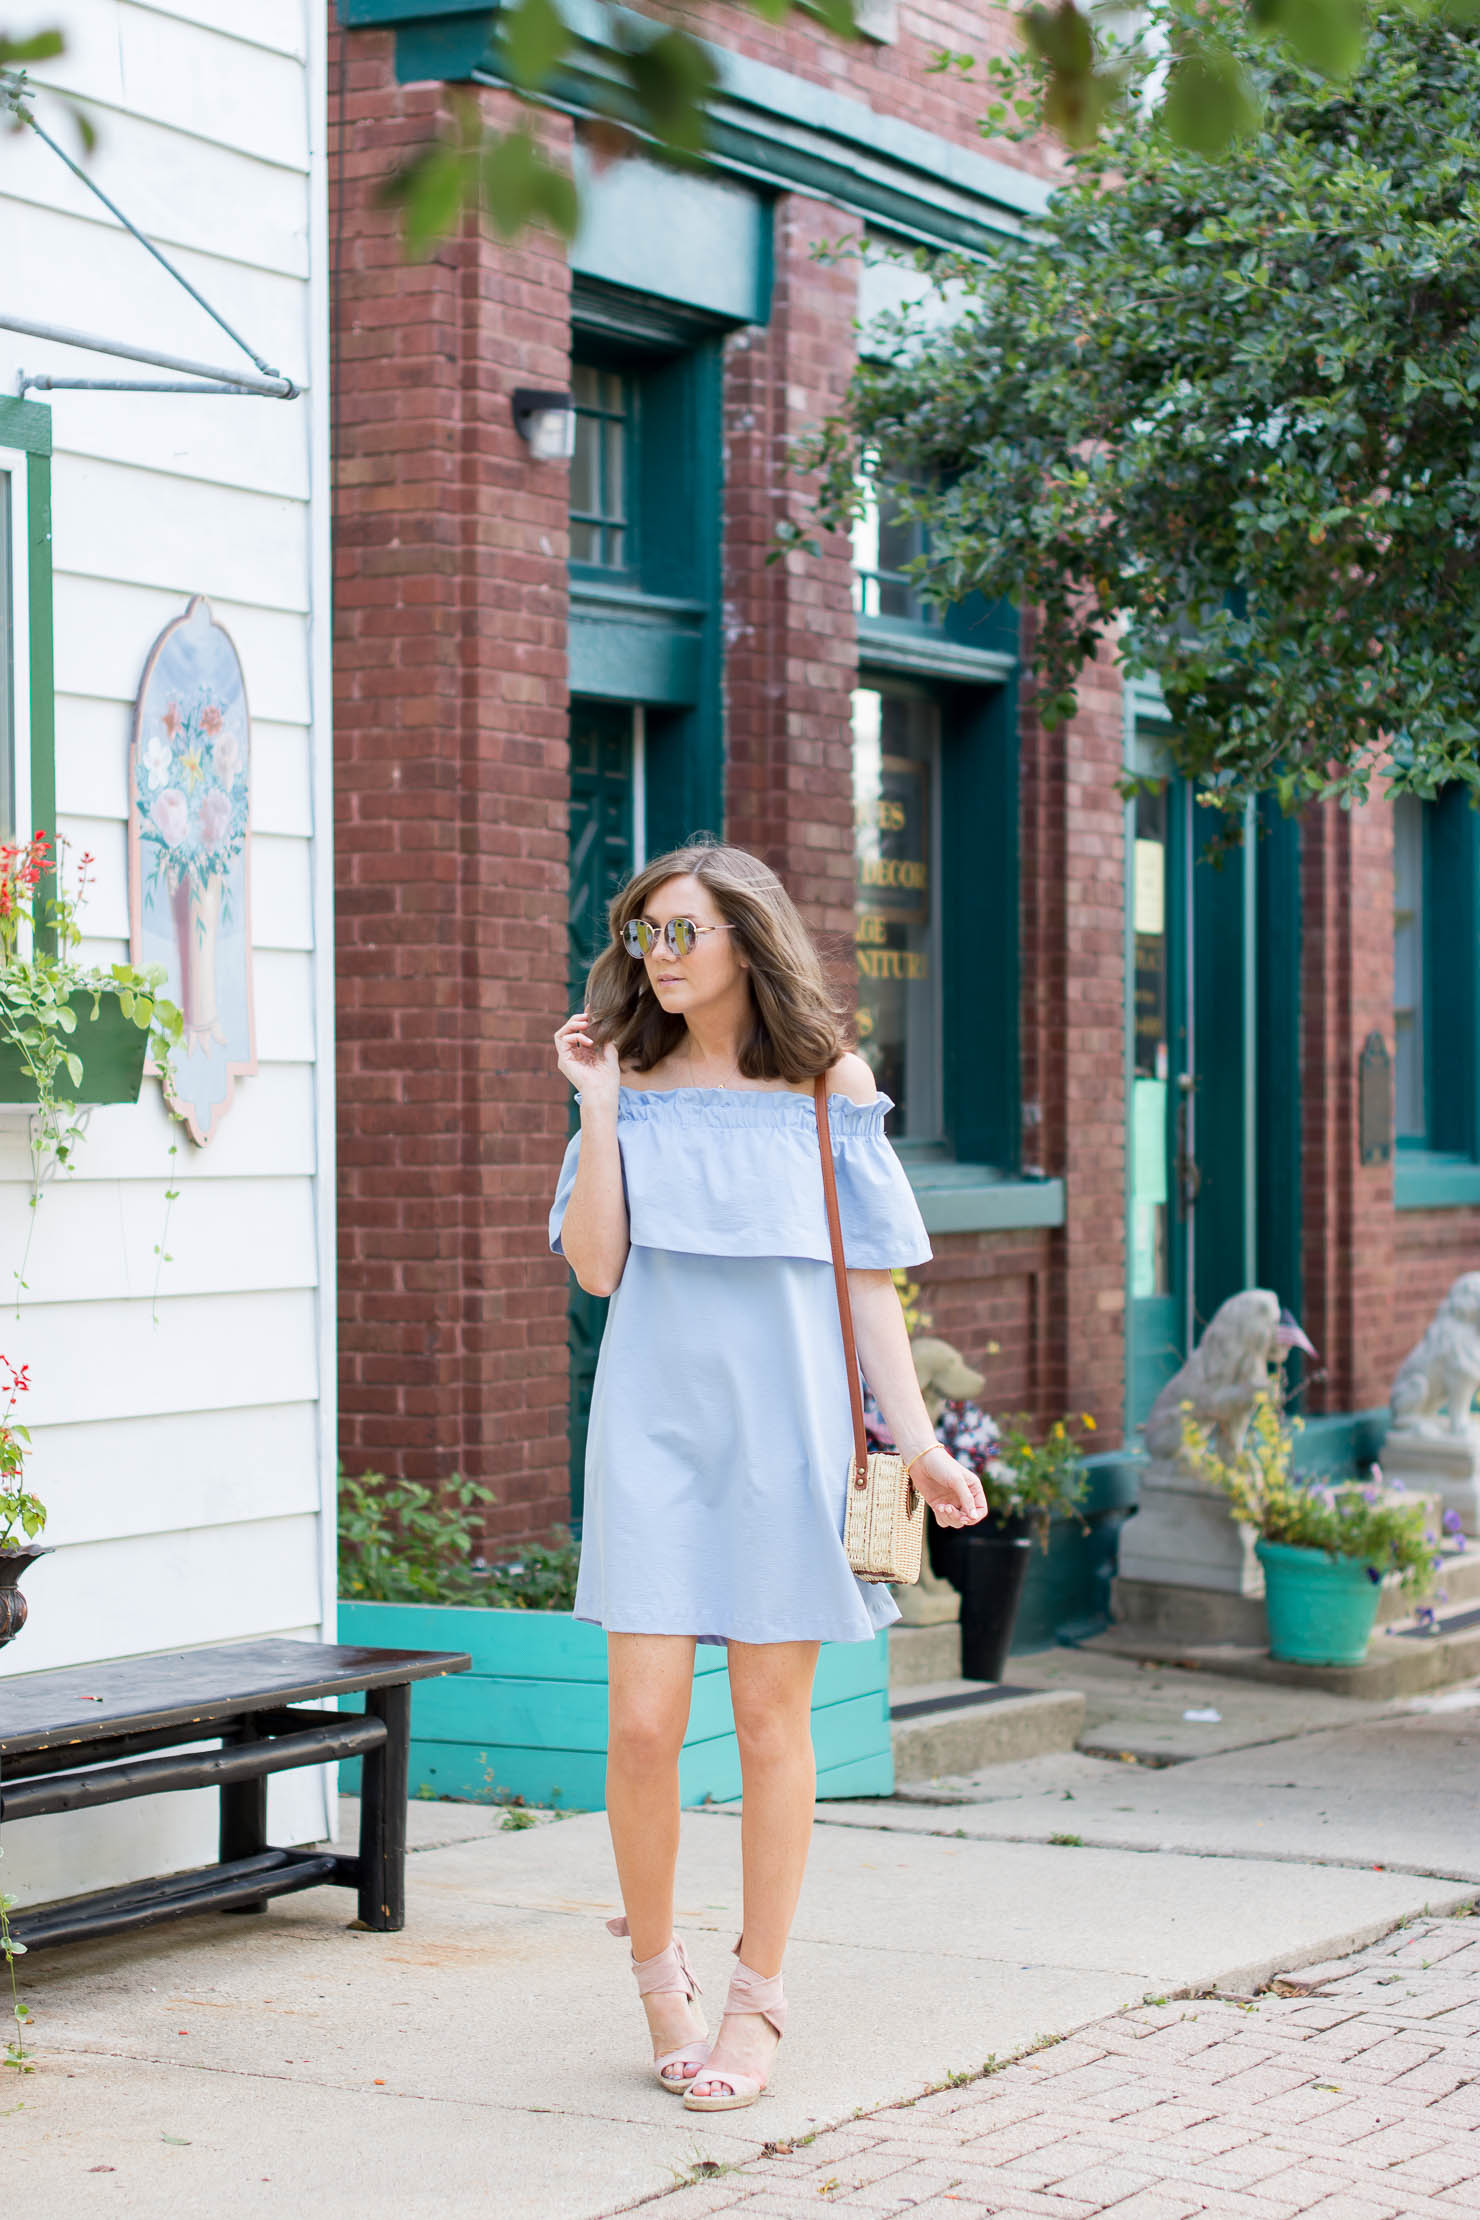 sweetspot labs, the summer beauty essential you need now, H&M off the shoulder ruffle dress with pockets, basket bag under $20